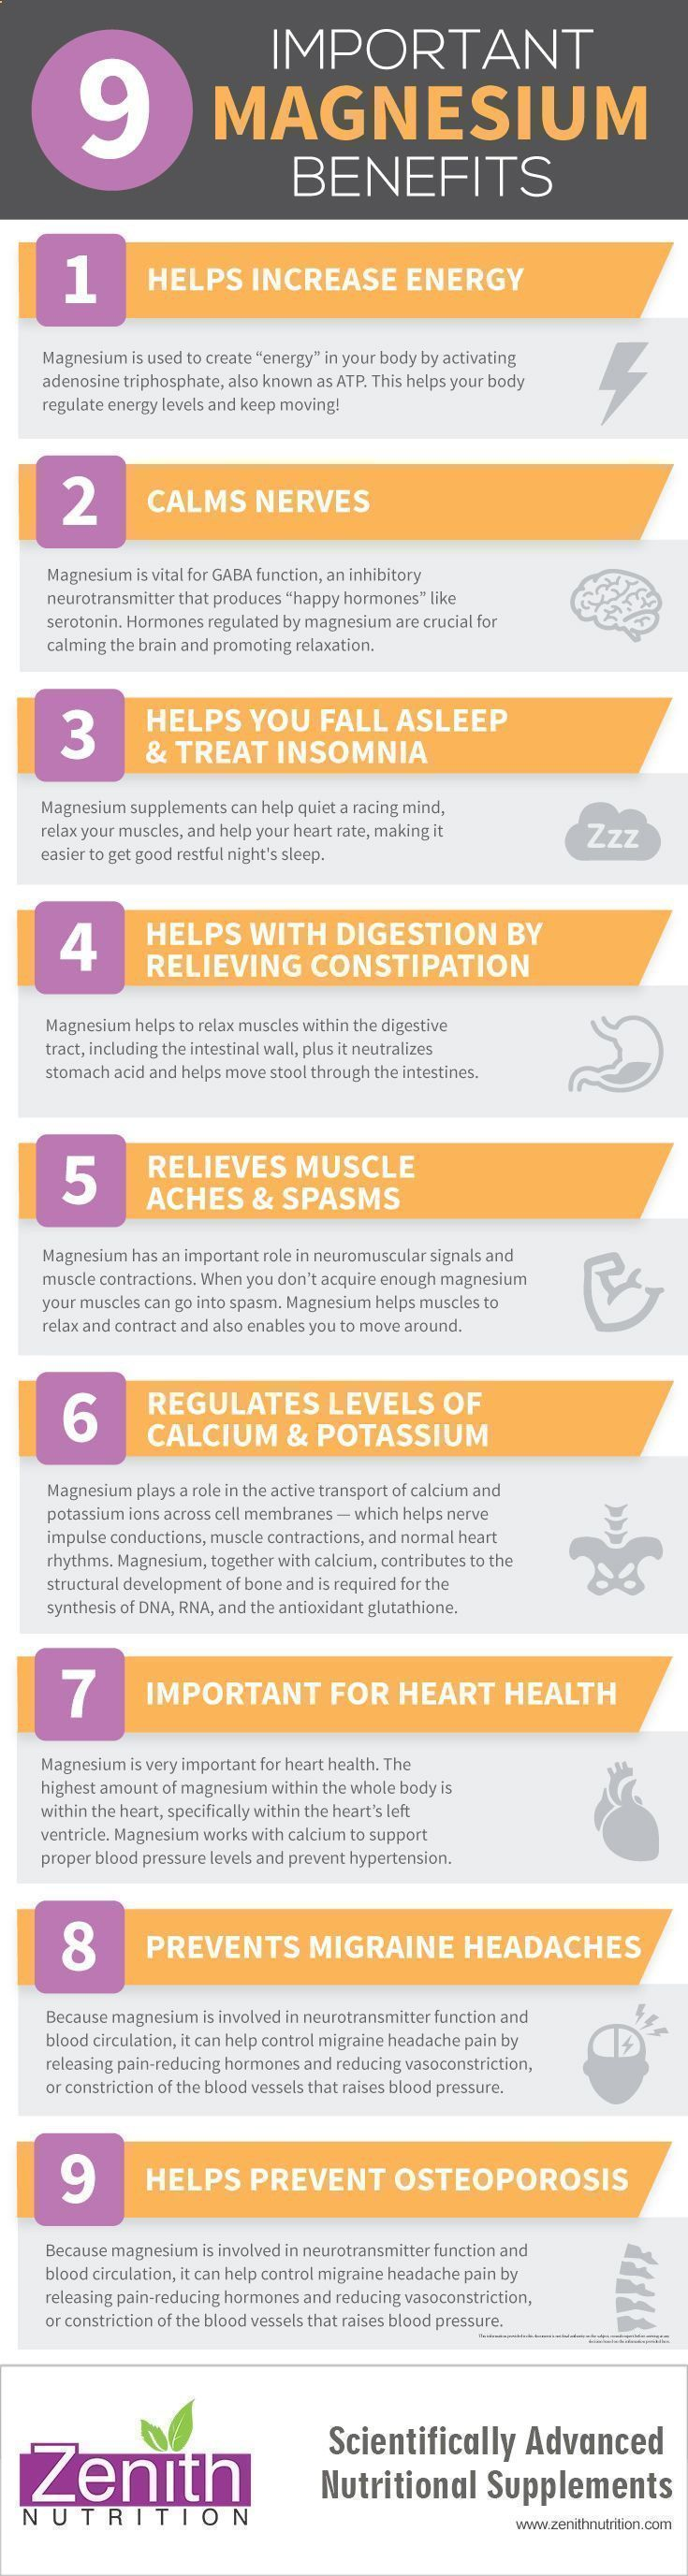 Important Magnesium Benefits. Helps increase energy, Calms nerves, Helps you fall asleep and treat insomnia, helps with digestion by relieving constipation, relieves muscle aches and spasms, regulates levels of Calcium Potassium important for heart health, prevents migraine, head aches, helps prevents Osteoporosis. Best supplements from Zenith Nutrition. Health Supplements. Nutritional Supplements. Health Infographics #migraineinfographics #insomniahelp #migrainehelp #musclenutrition